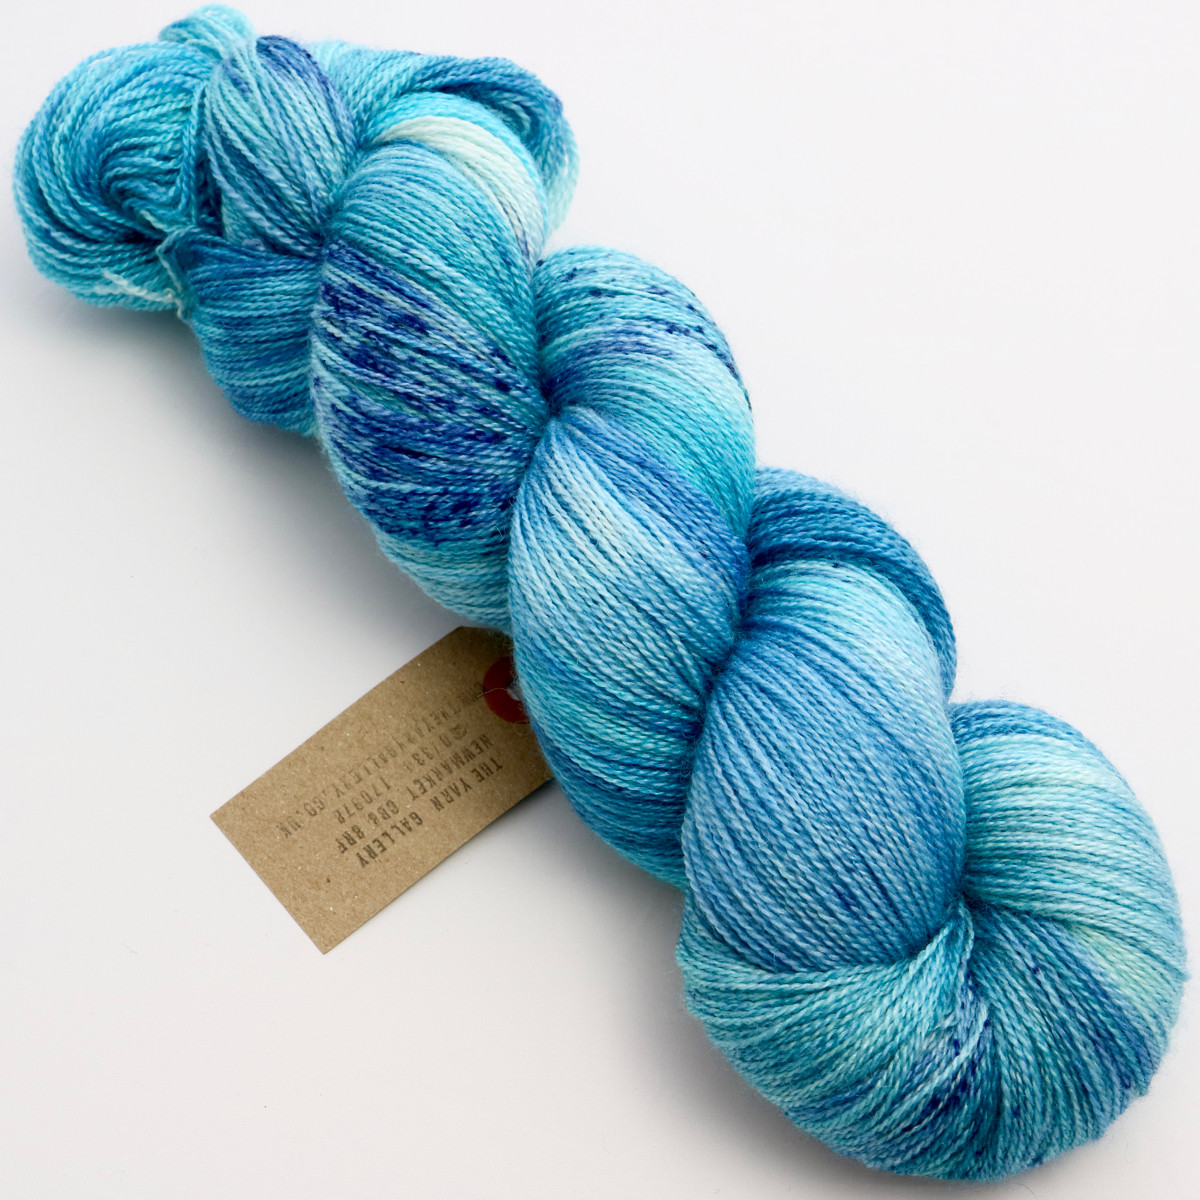 Lace Yarn Inspirational Shimmer Mountain Lake the Yarn Gallery Of Amazing 44 Pictures Lace Yarn